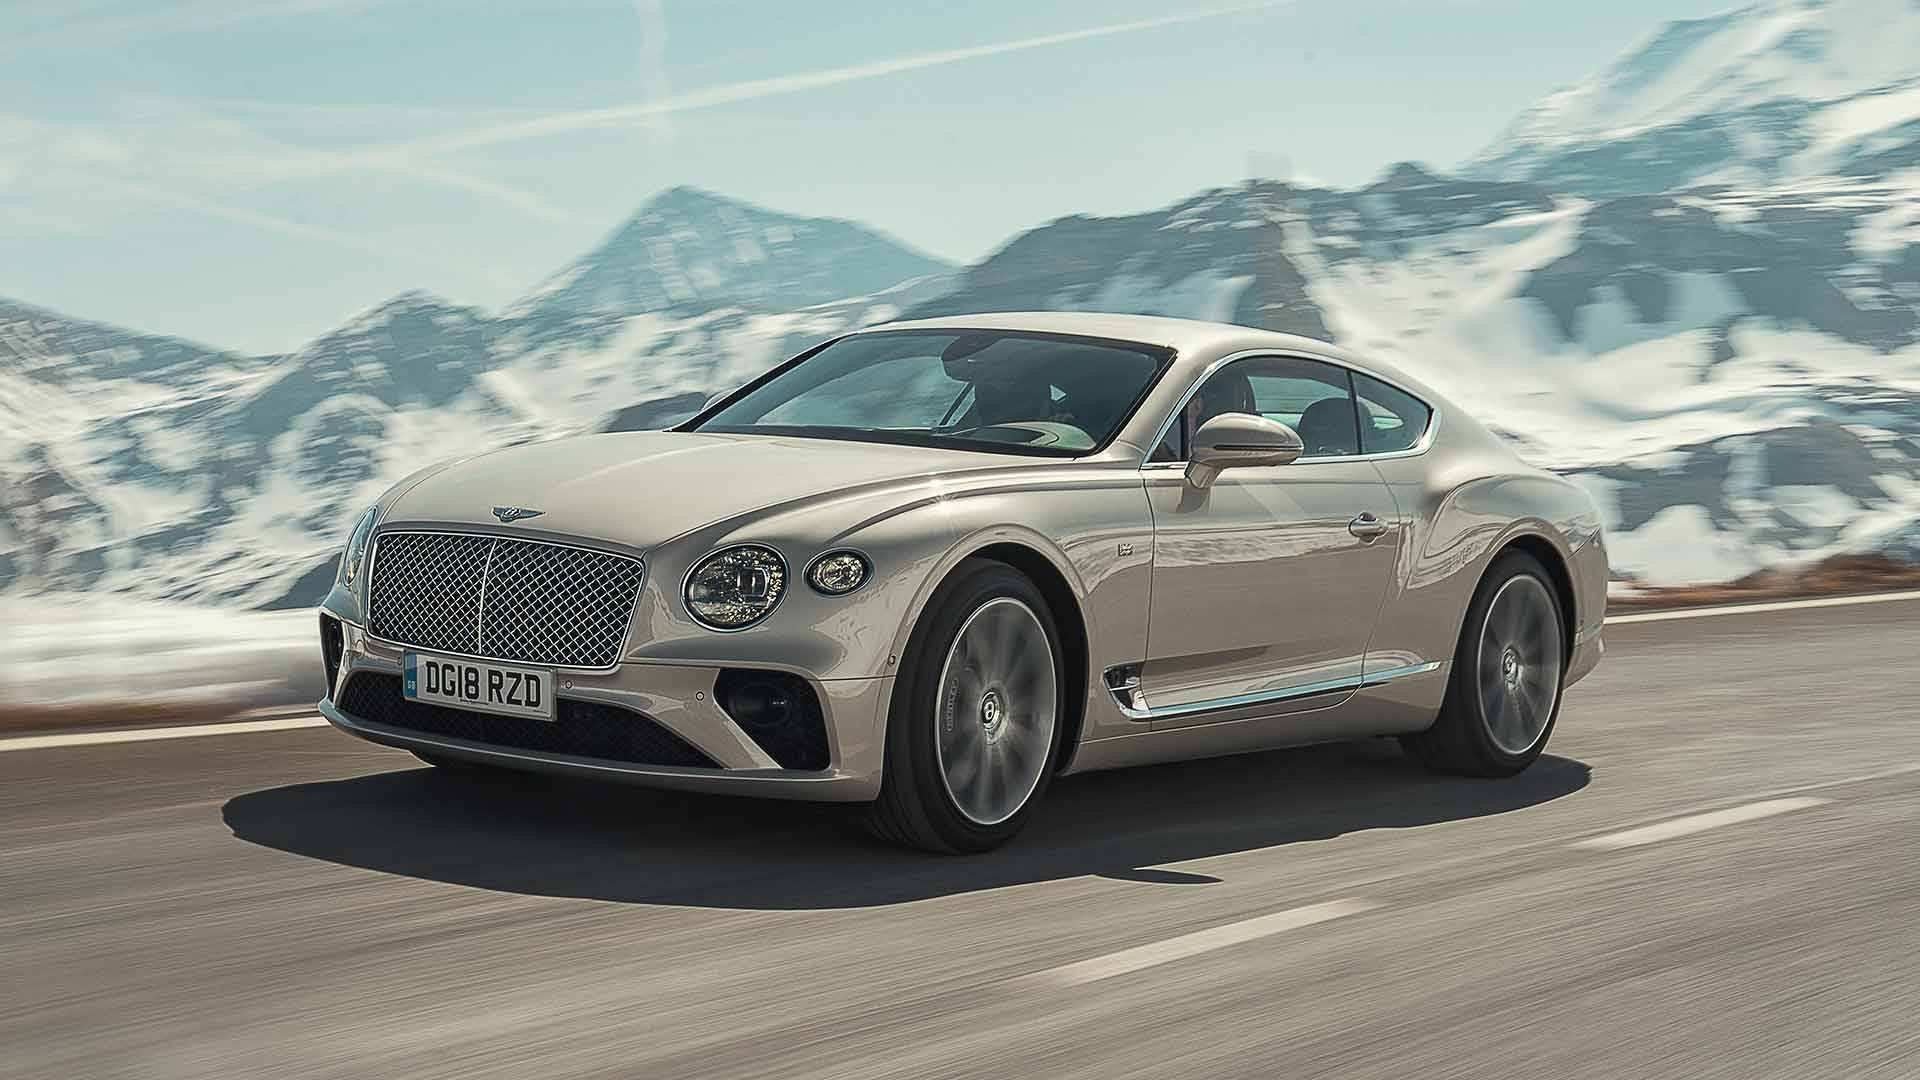 27 All New 2019 Bentley Gt Images